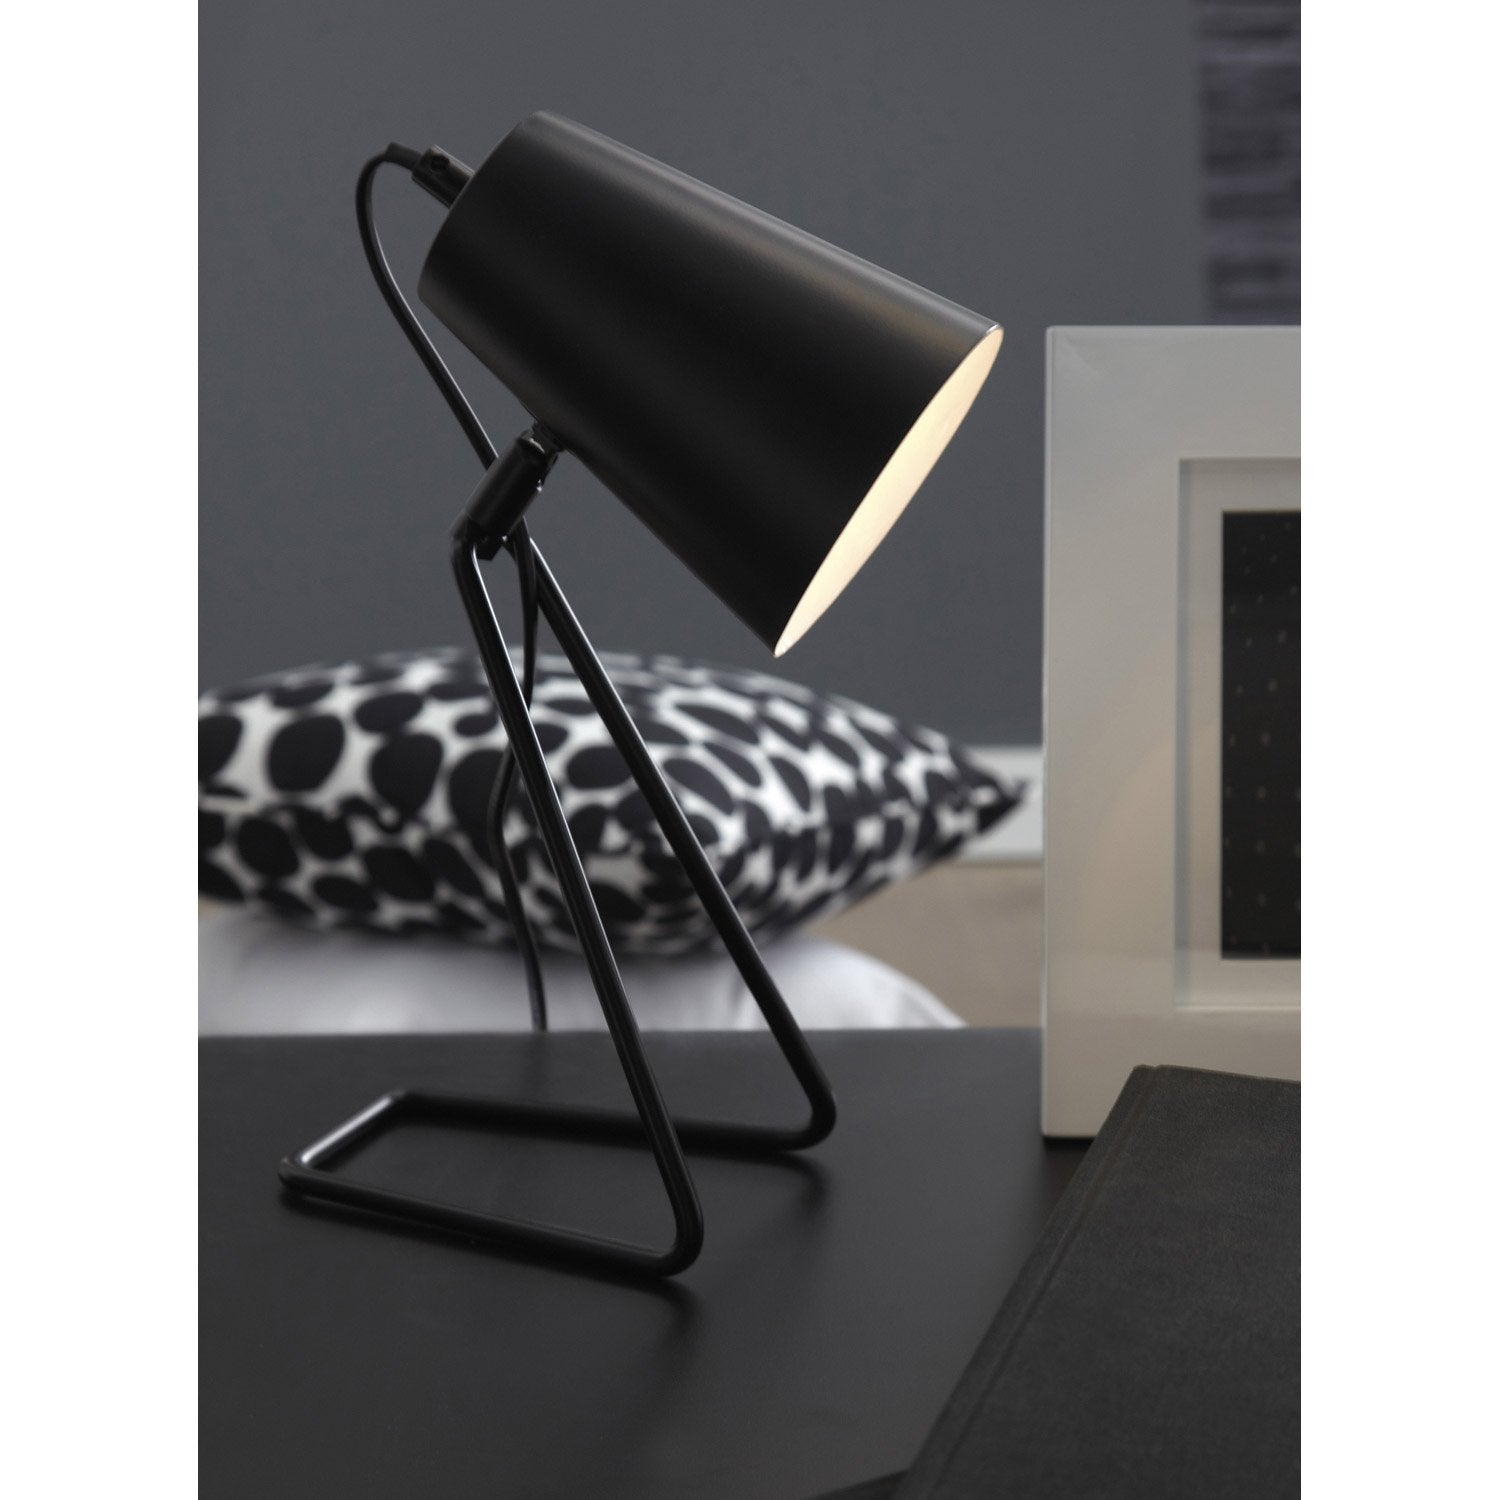 lampe e14 moeta inspire m tal noir 40 w leroy merlin. Black Bedroom Furniture Sets. Home Design Ideas